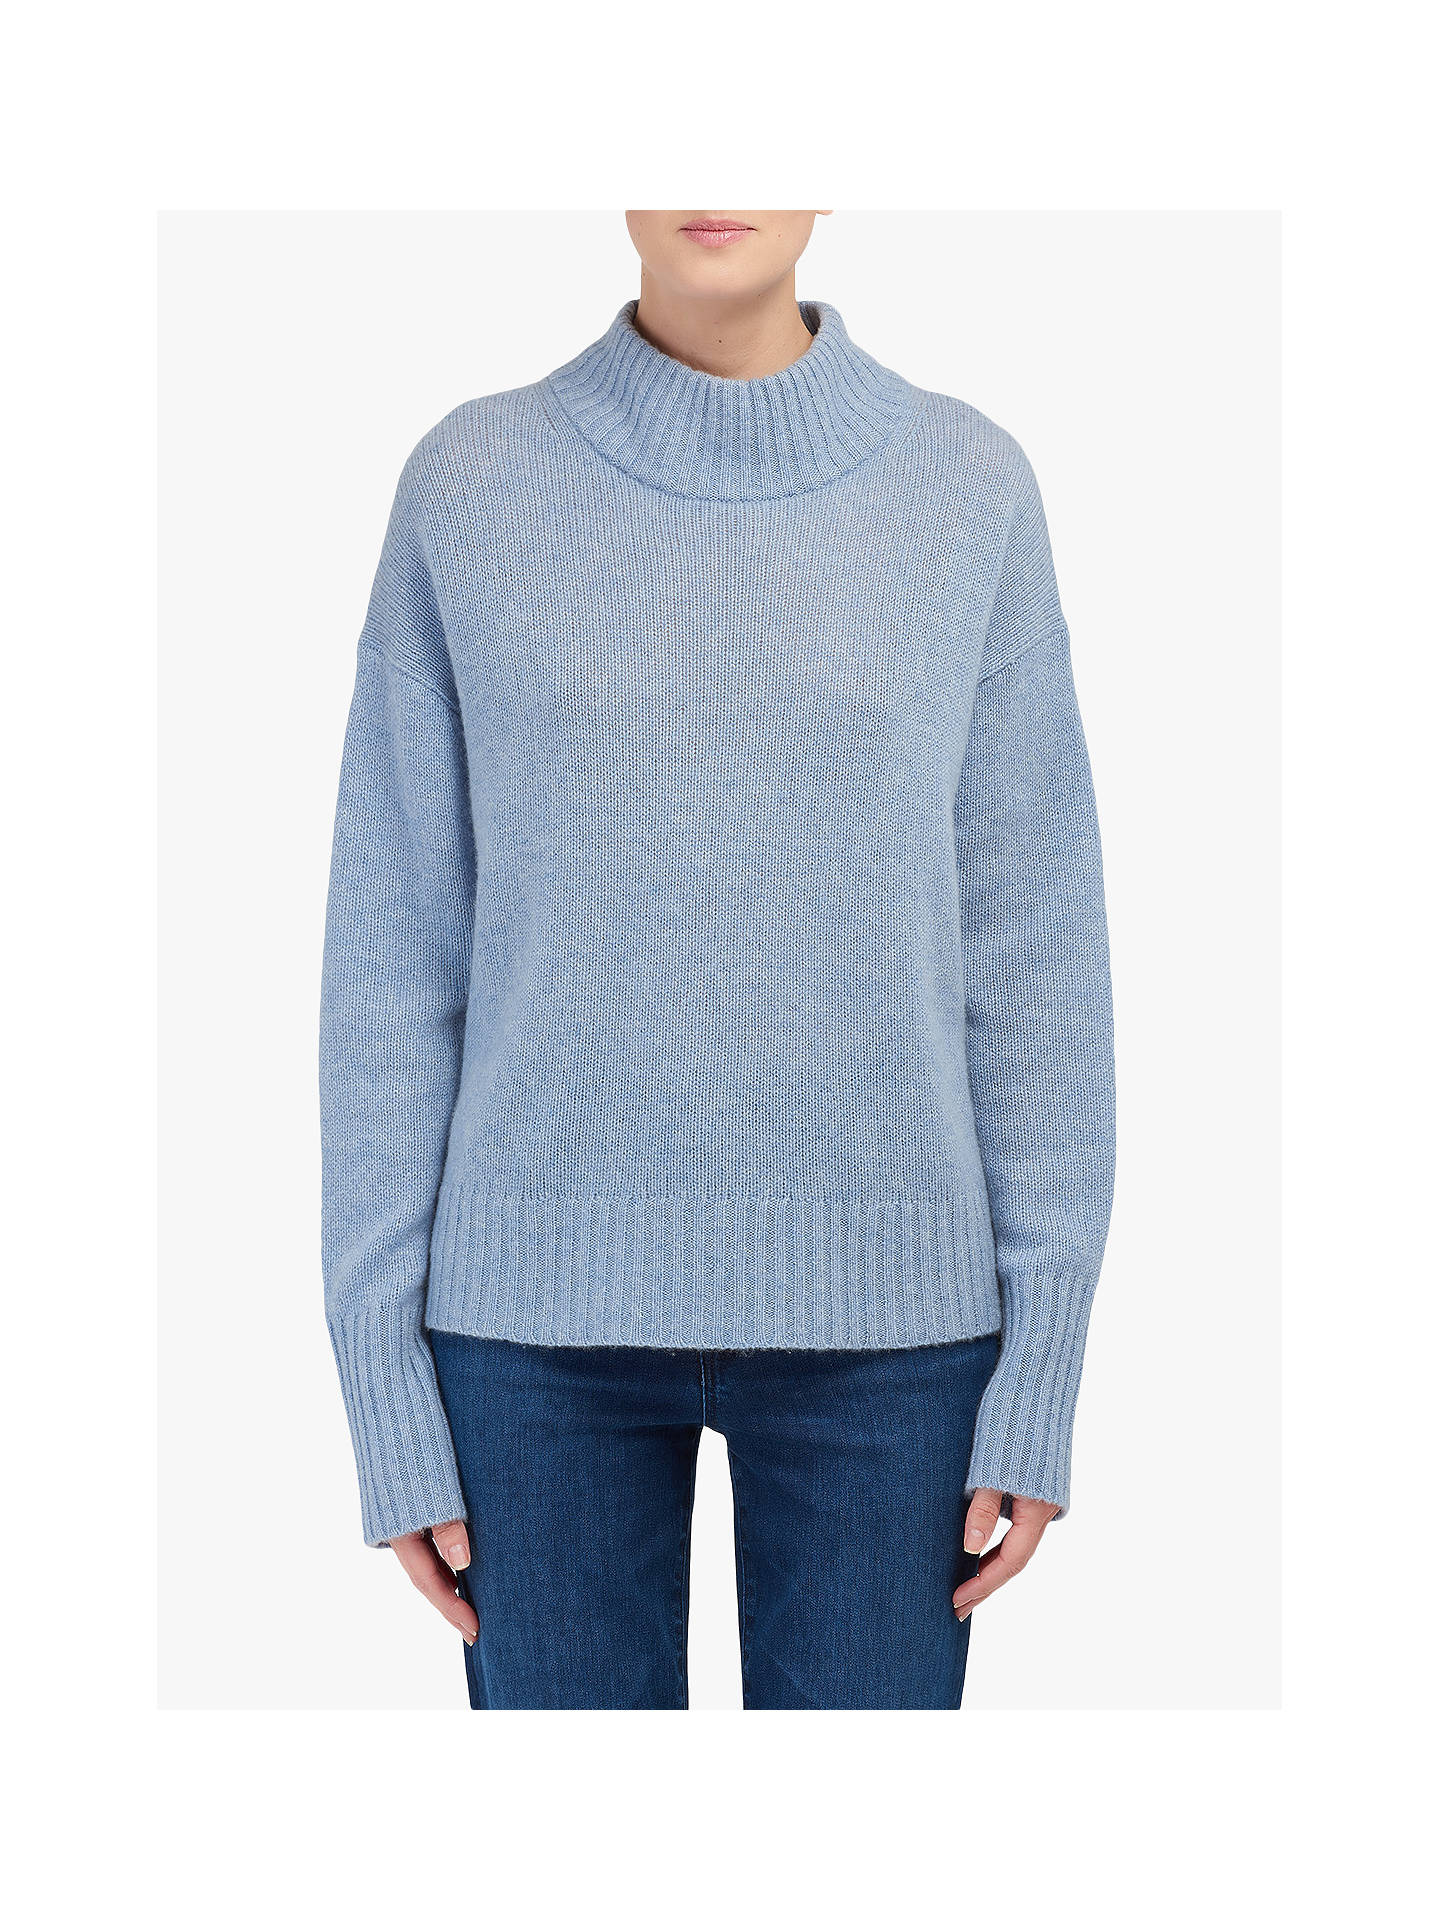 5918707fc6 360 Sweater Lyla Polo Neck Cashmere Jumper, Stonewash